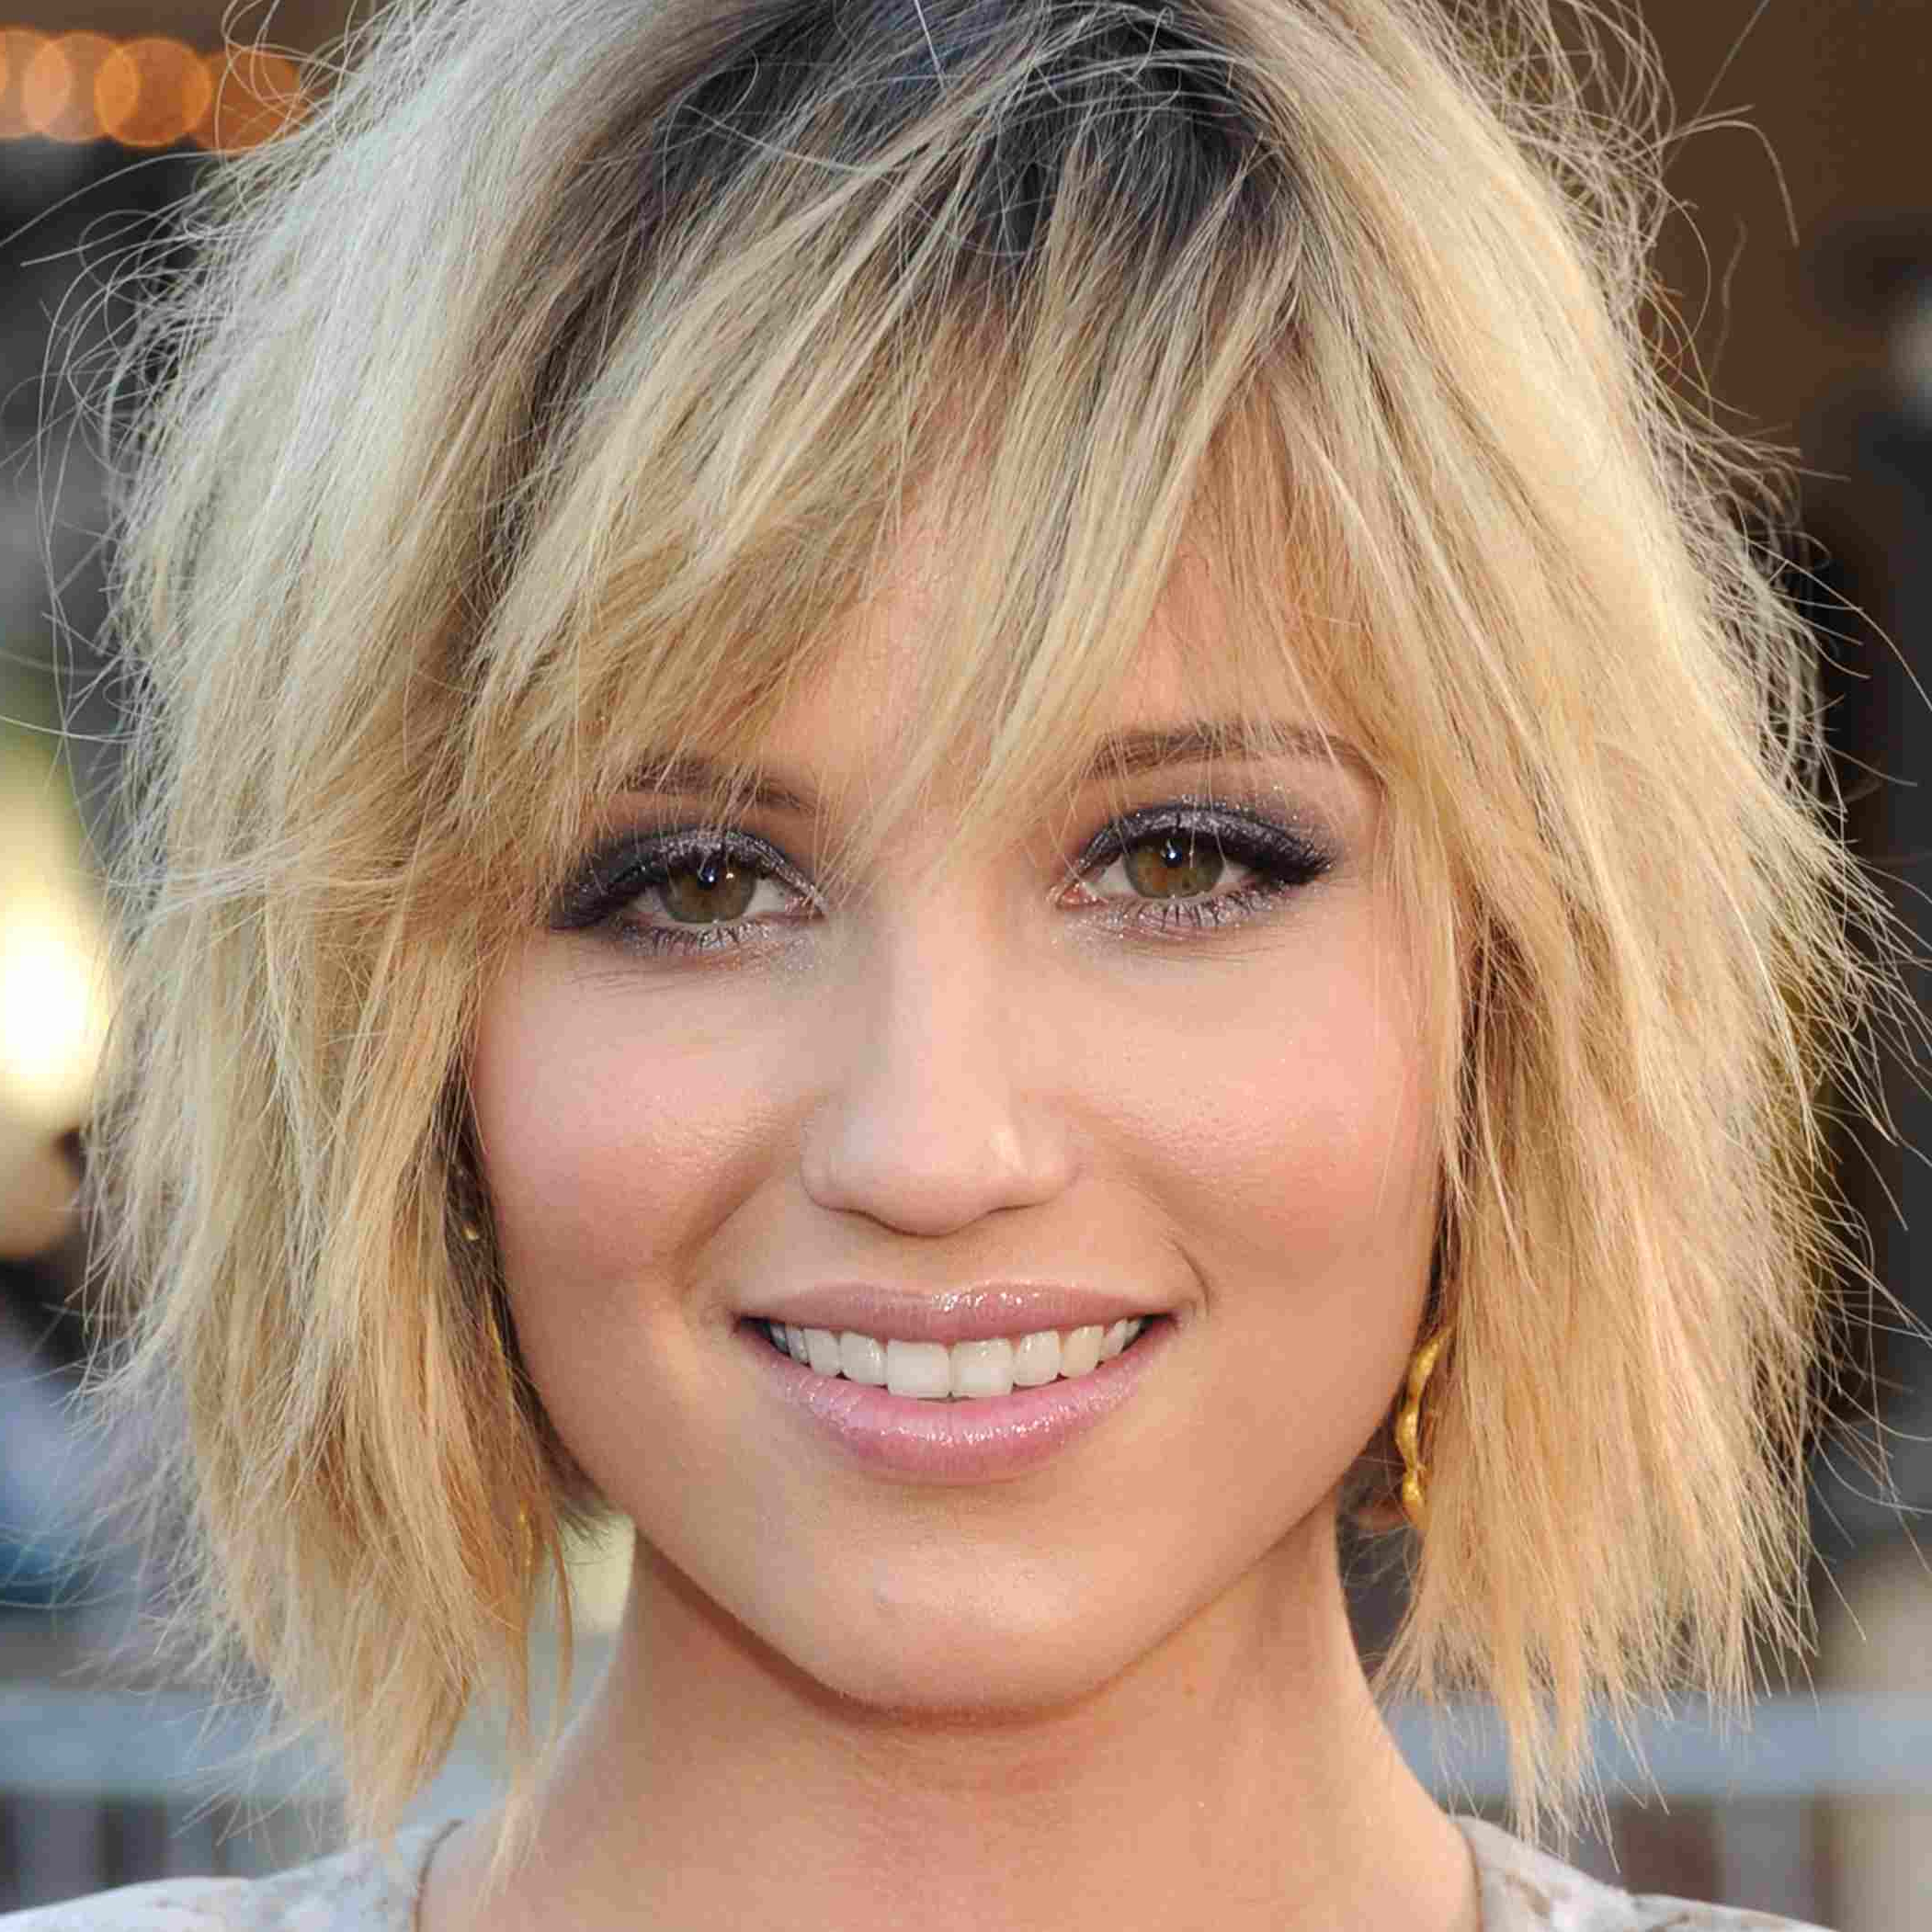 Can't Miss Shag Haircuts, From Short To Long With Recent Short Shag Haircuts With Side Bangs (View 7 of 20)